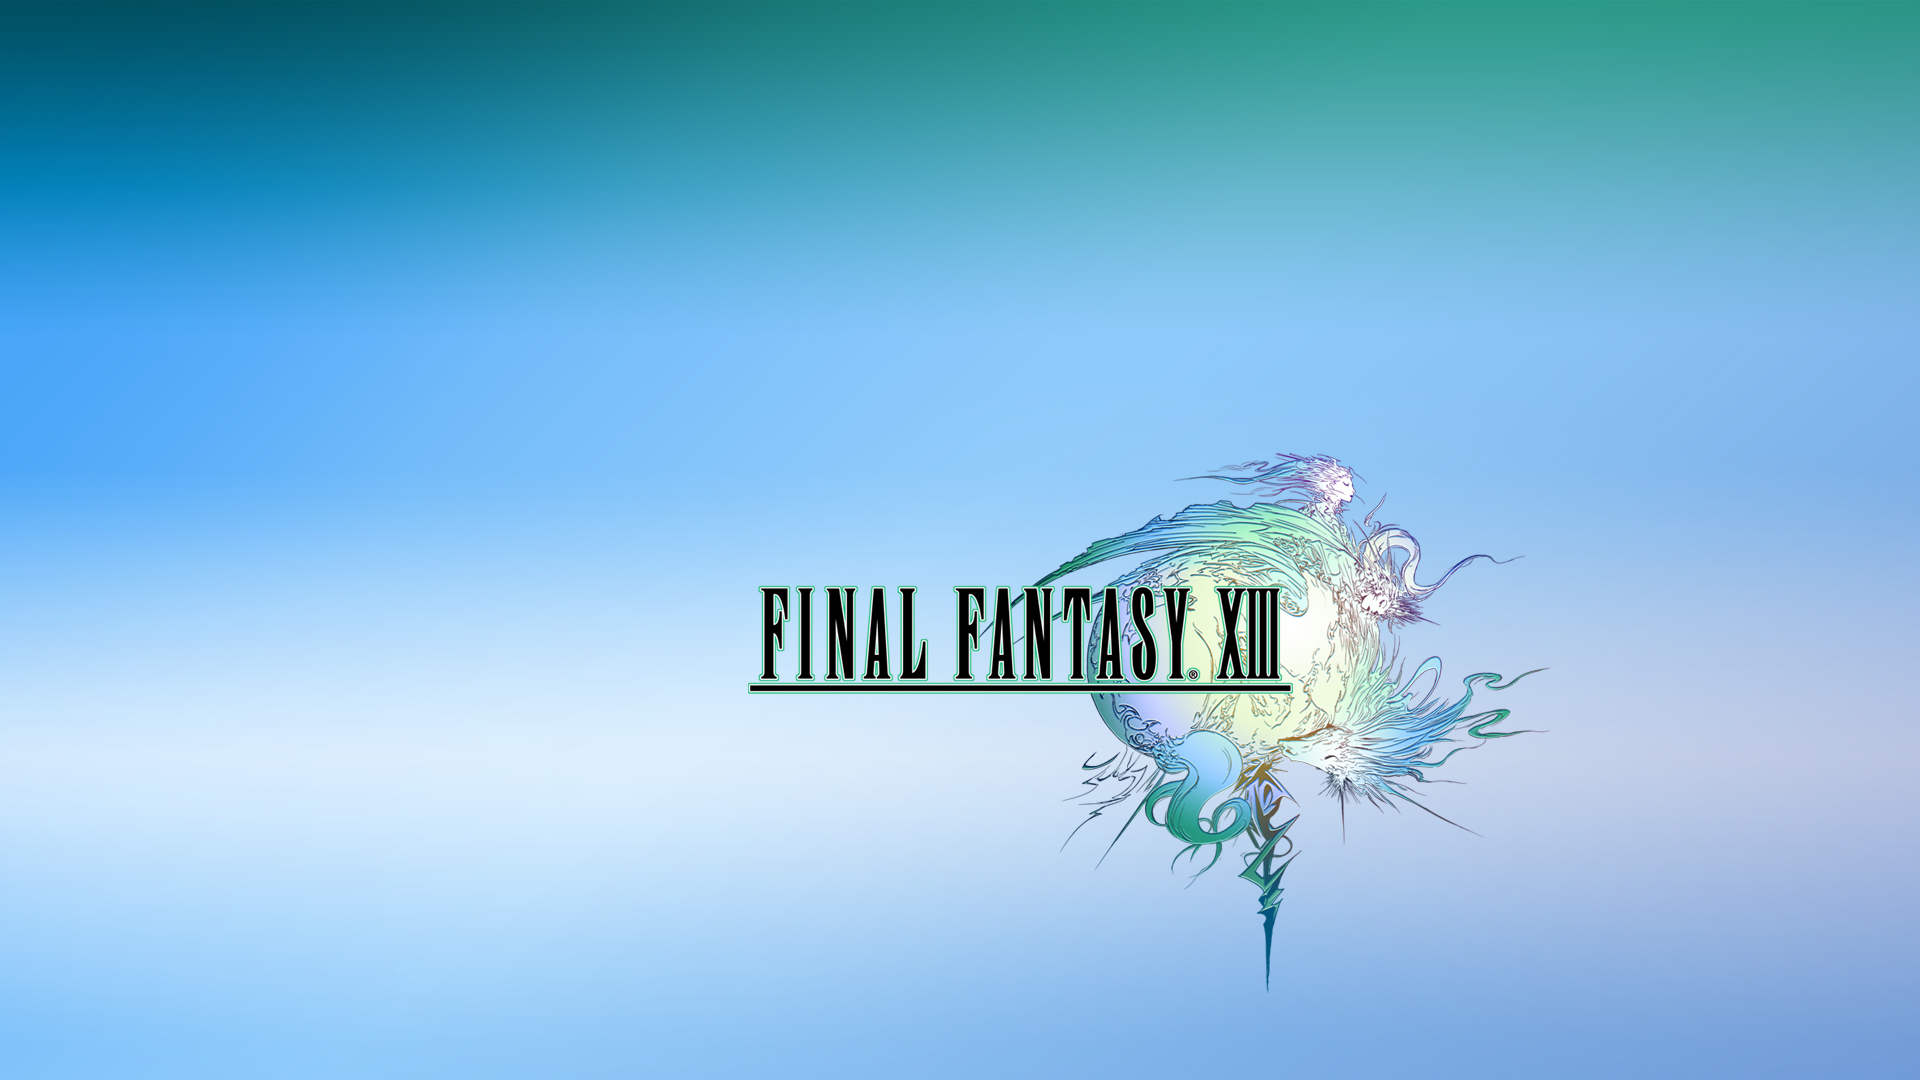 FinalFantasy XIII - Logo Wallpapers